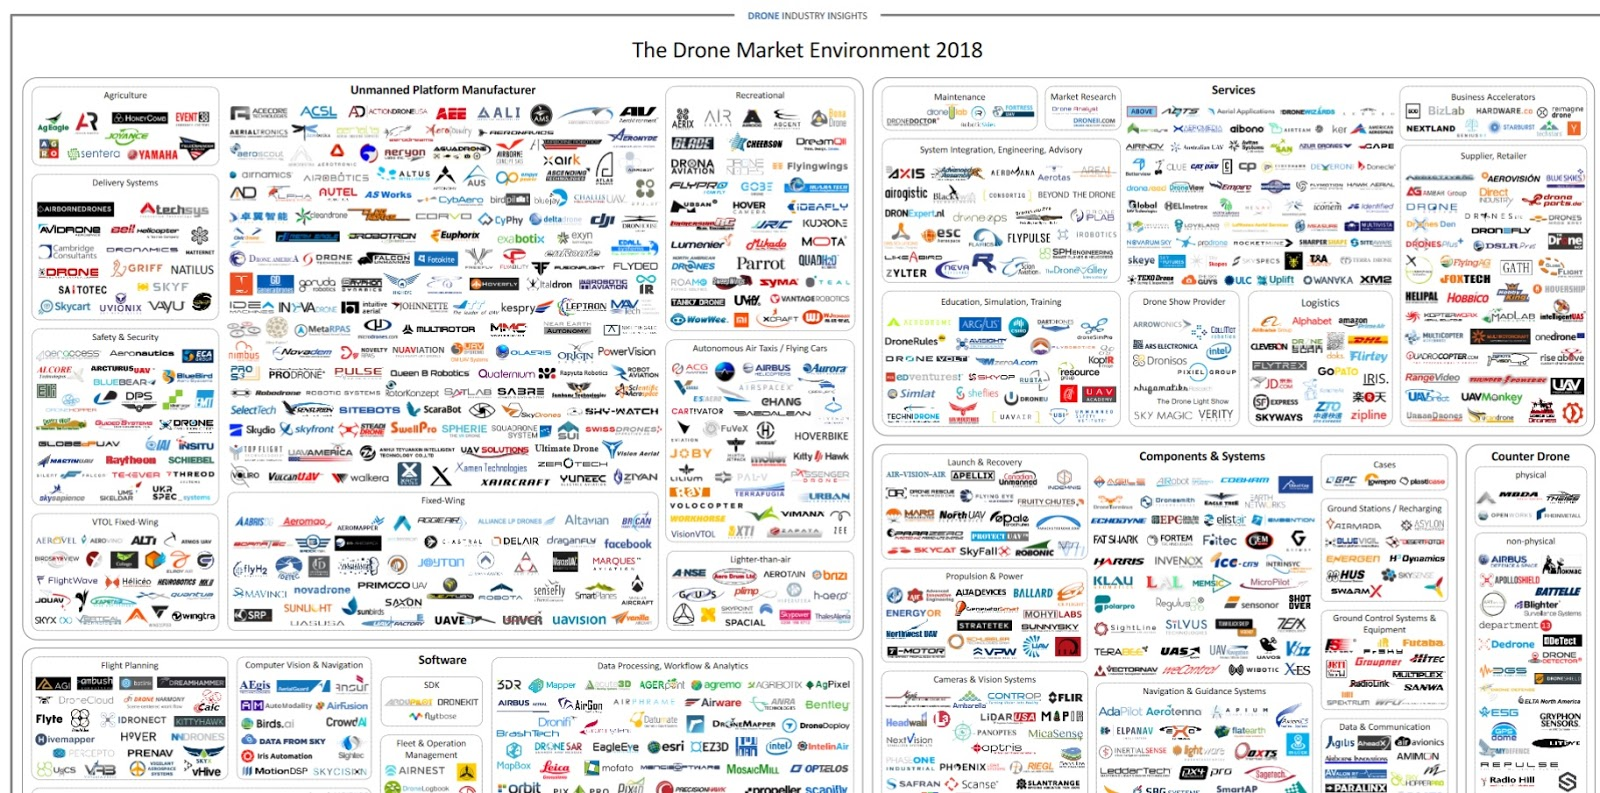 Droni - The Drone Market Enviroment 2018 - Fonte: DRONE INDUSTRY INSIGHTS - www.droneii.com